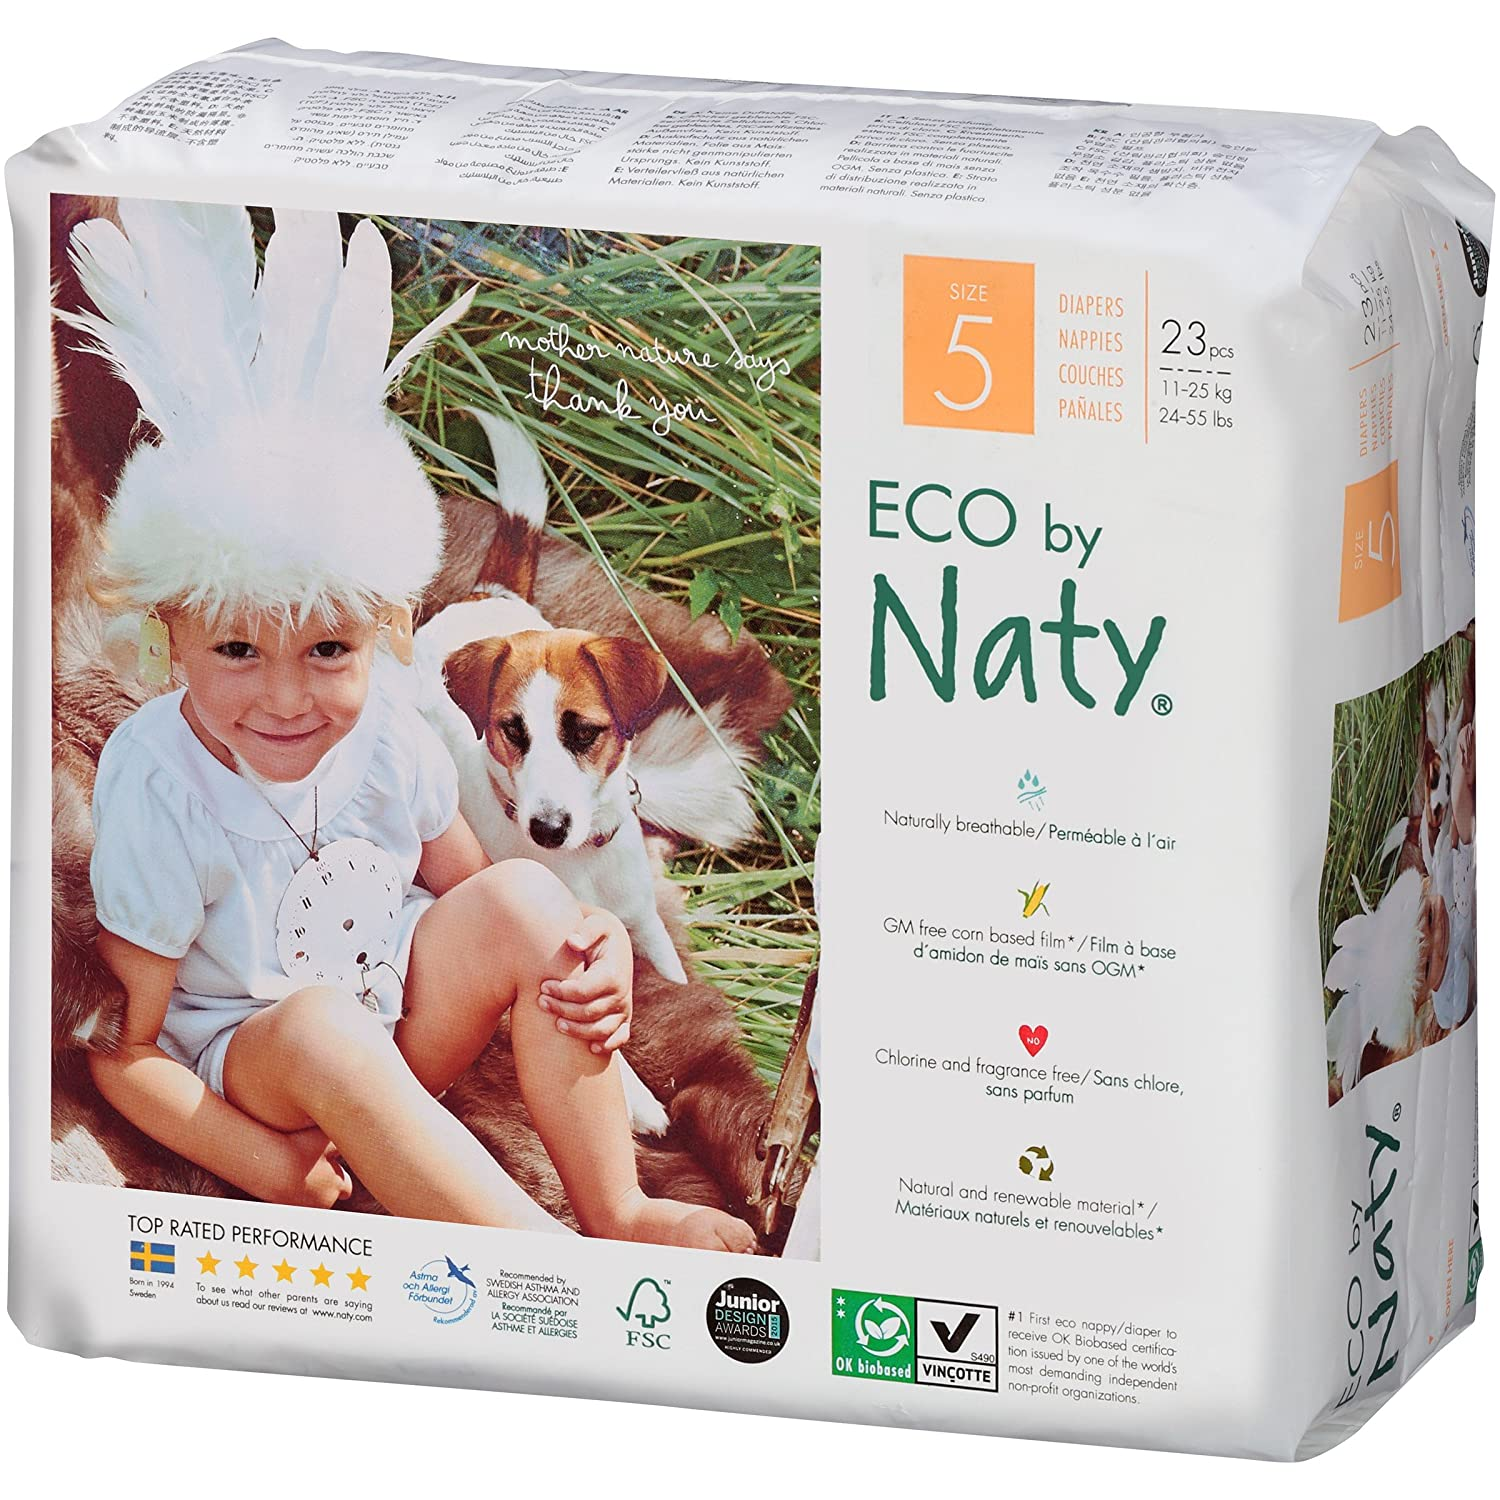 Amazon.com: Branded Naty, ECO By Naty Diapers , Size 5, Weight 27lbs - Branded Diapers with fast delivery (Soft and Comfortable for Babies): Health ...